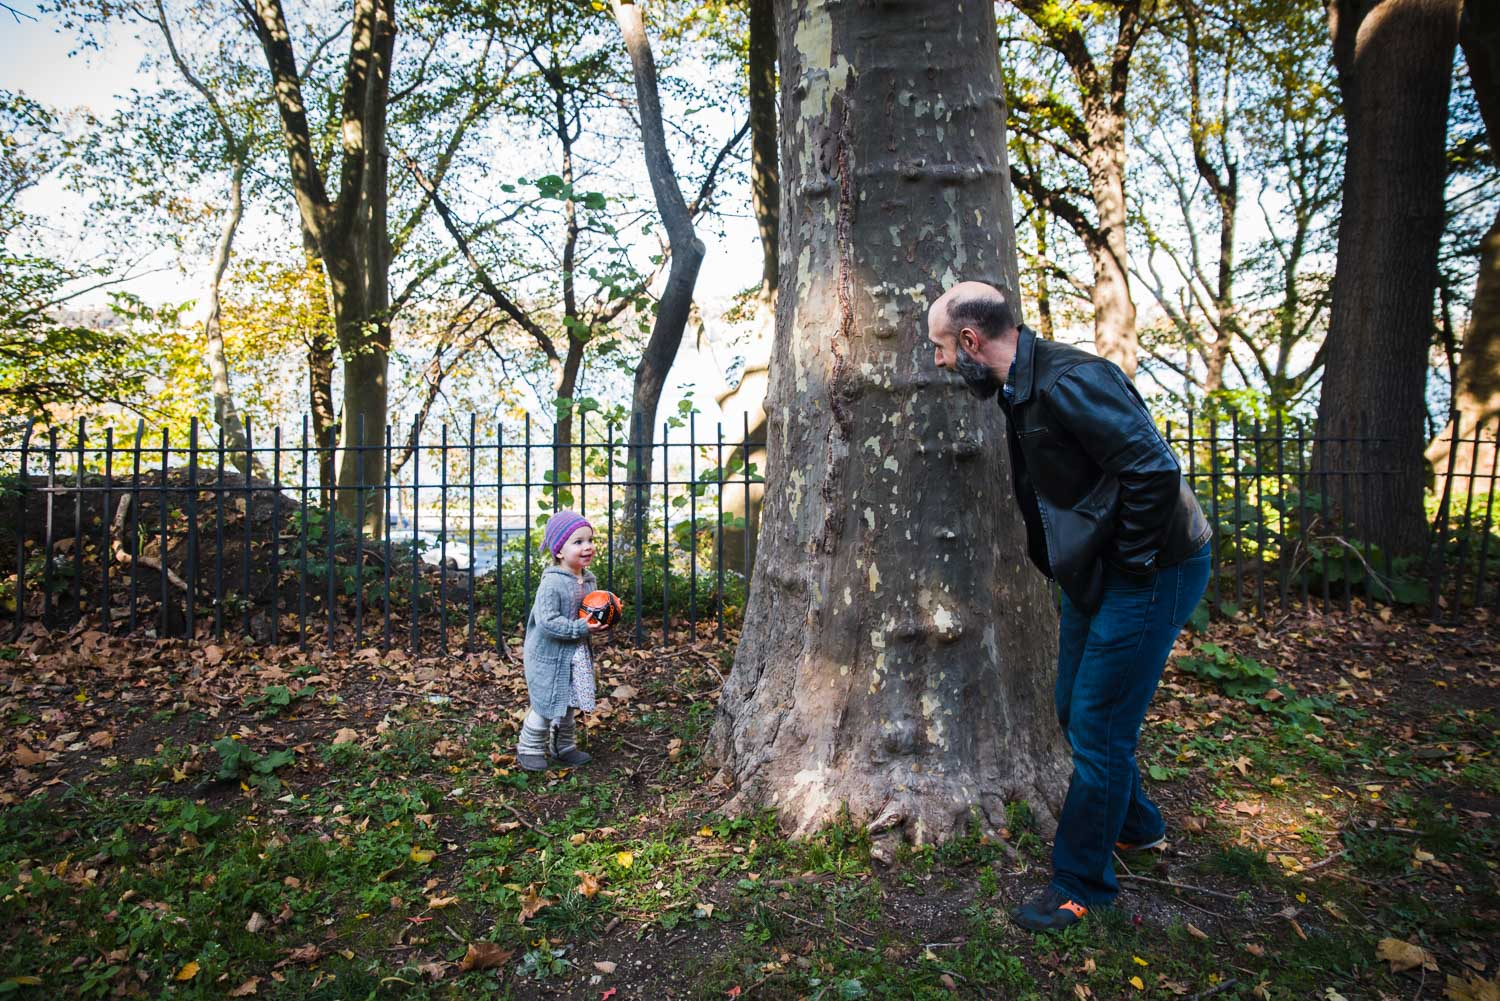 Dad playing hide and go seek with daughter in Riverside Park.